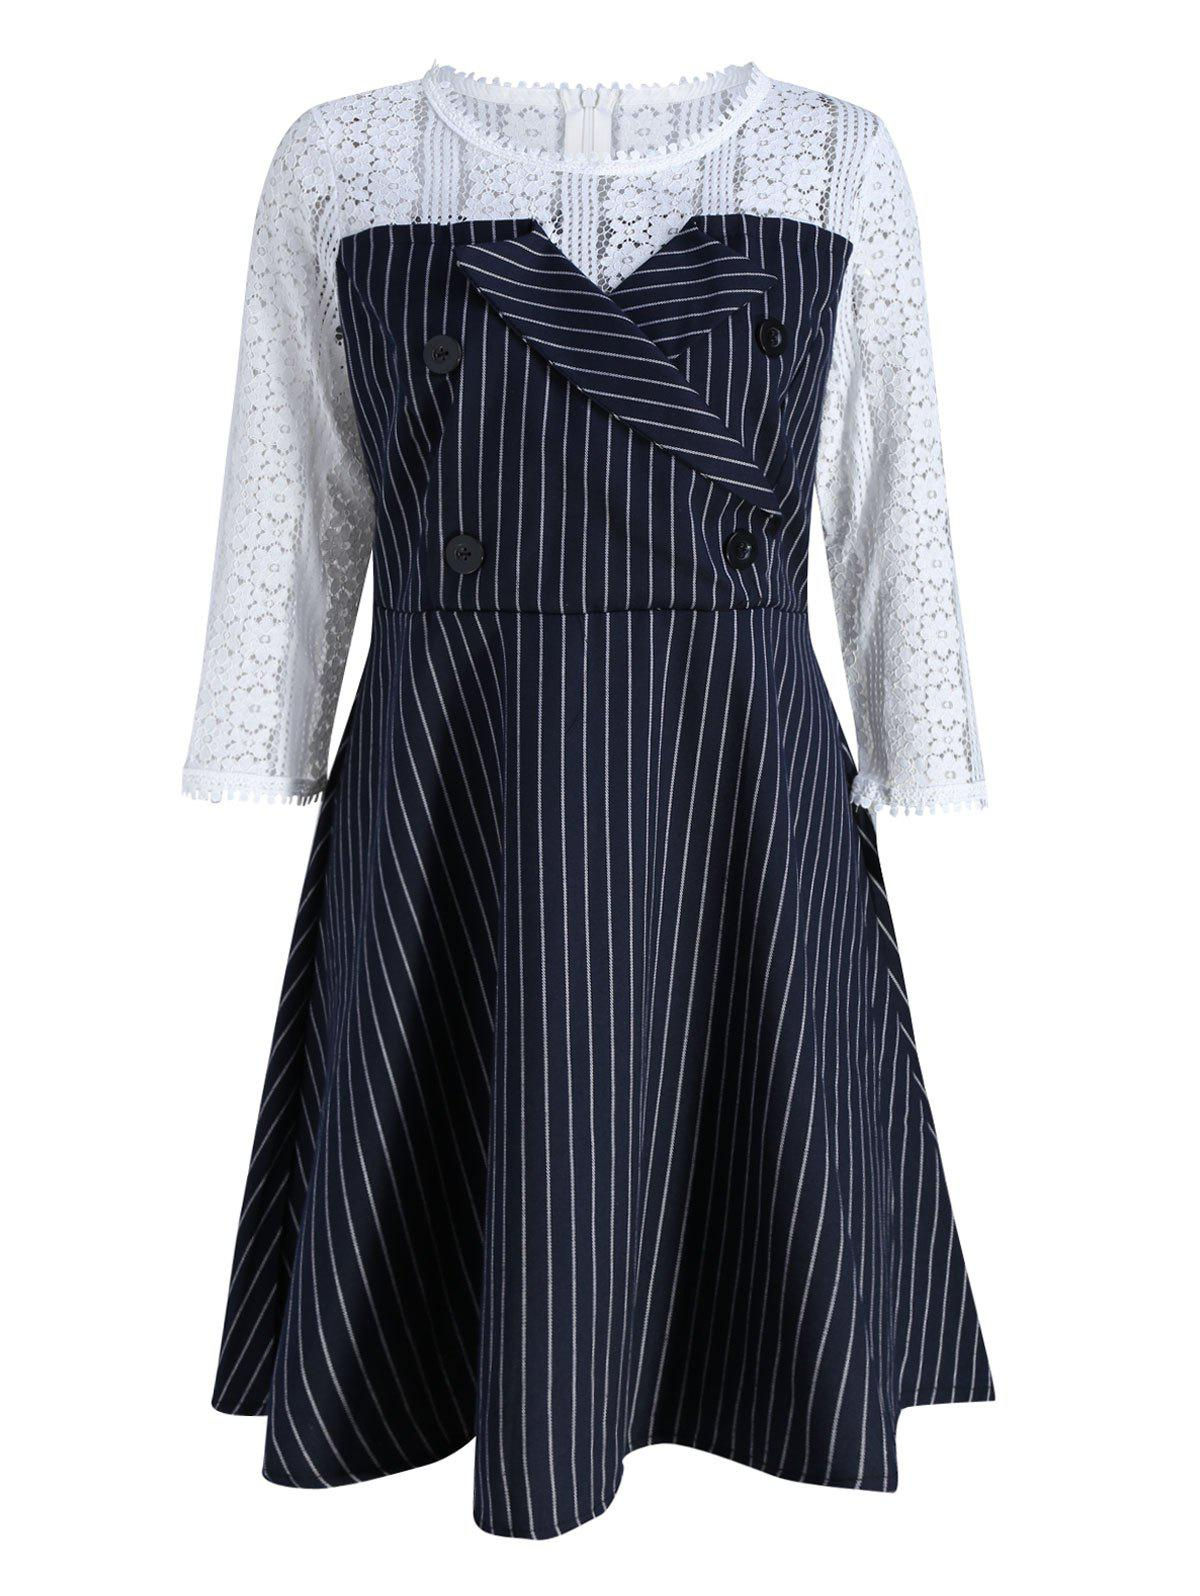 Plus Size Lace Panel Double Buckle Embellished DressWOMEN<br><br>Size: 5XL; Color: BLUE; Style: Cute; Material: Polyester; Silhouette: A-Line; Dresses Length: Knee-Length; Neckline: Round Collar; Sleeve Length: 3/4 Length Sleeves; Waist: High Waisted; Embellishment: Button,Hollow Out,Lace; Pattern Type: Striped; With Belt: No; Season: Fall,Winter; Weight: 0.4100kg; Package Contents: 1 x Dress;